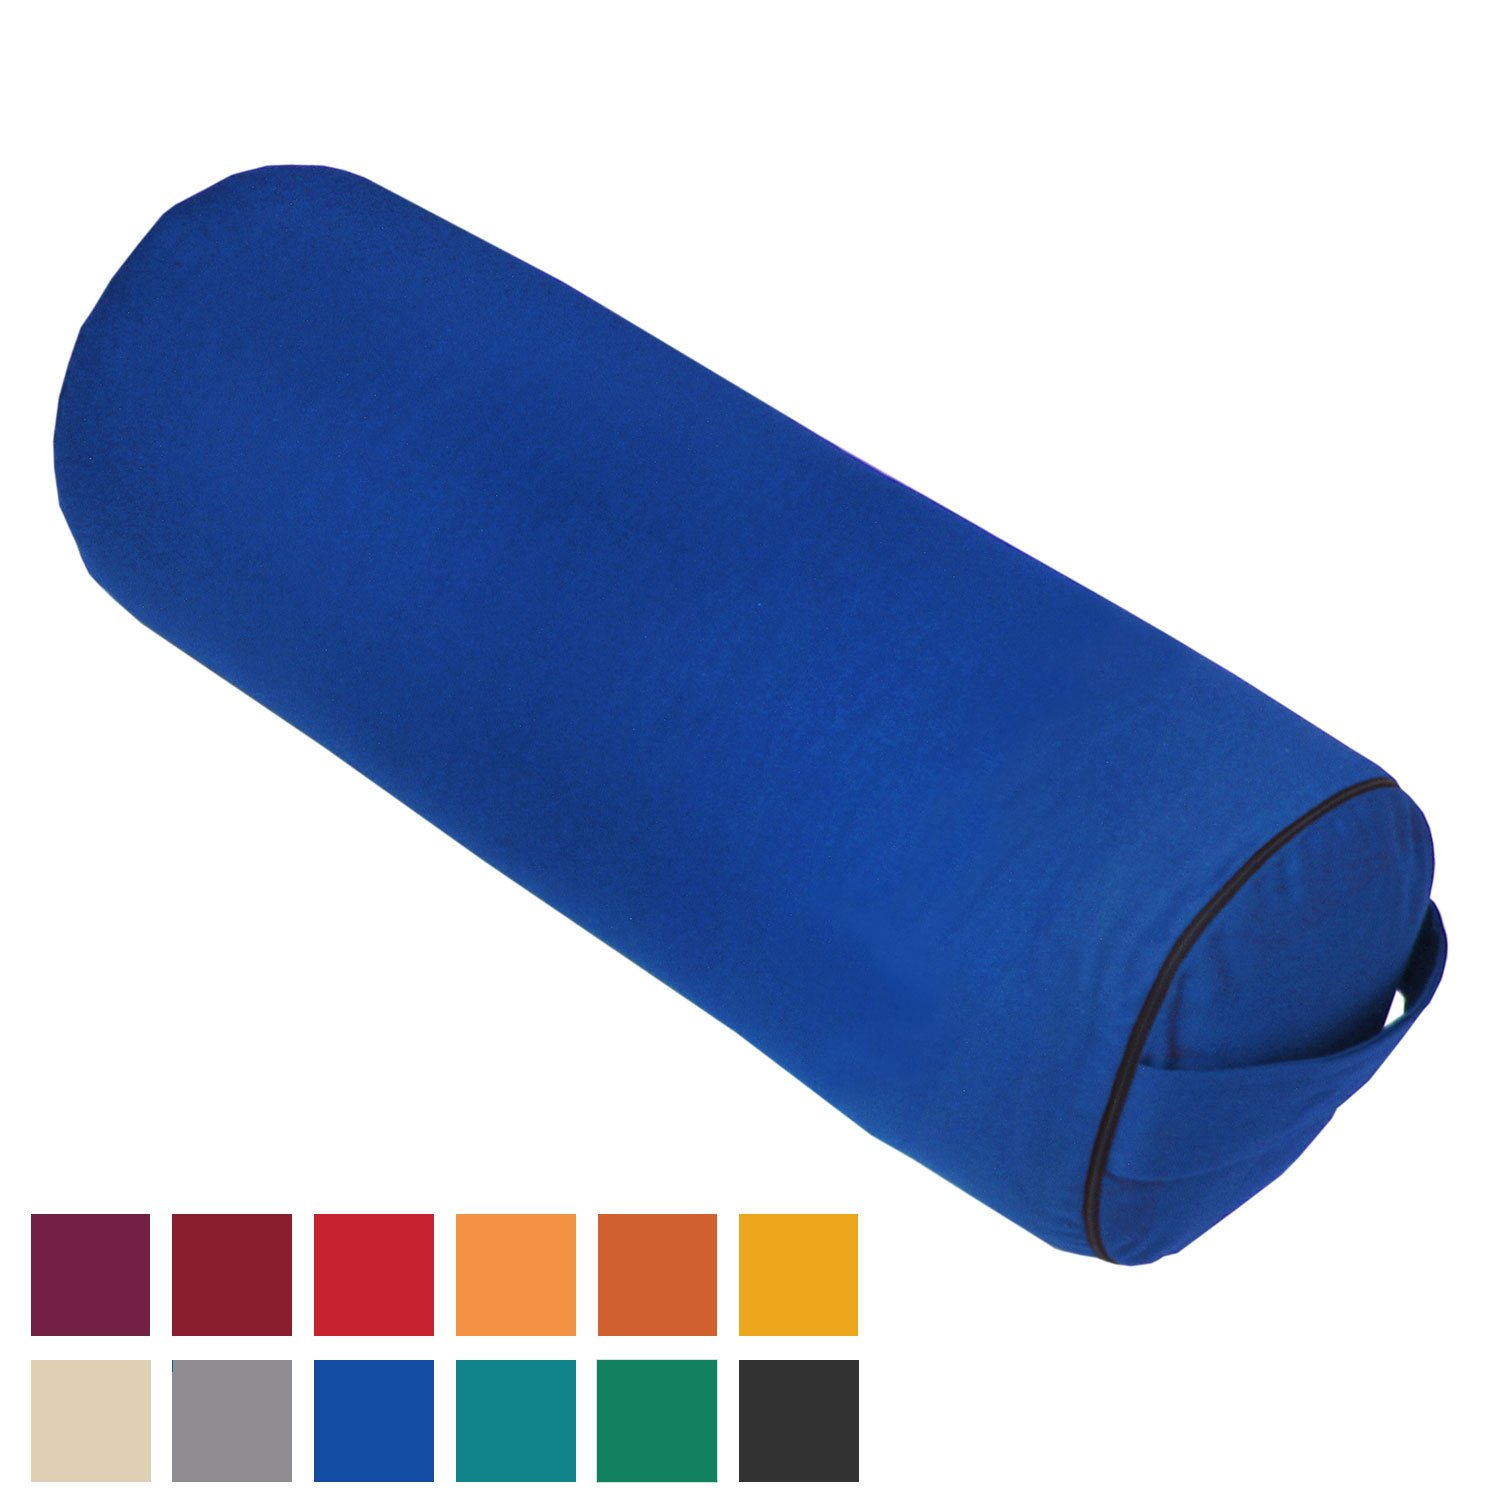 Bodhi Yoga - Cojín rodillo para yoga, color azul: Amazon.es ...